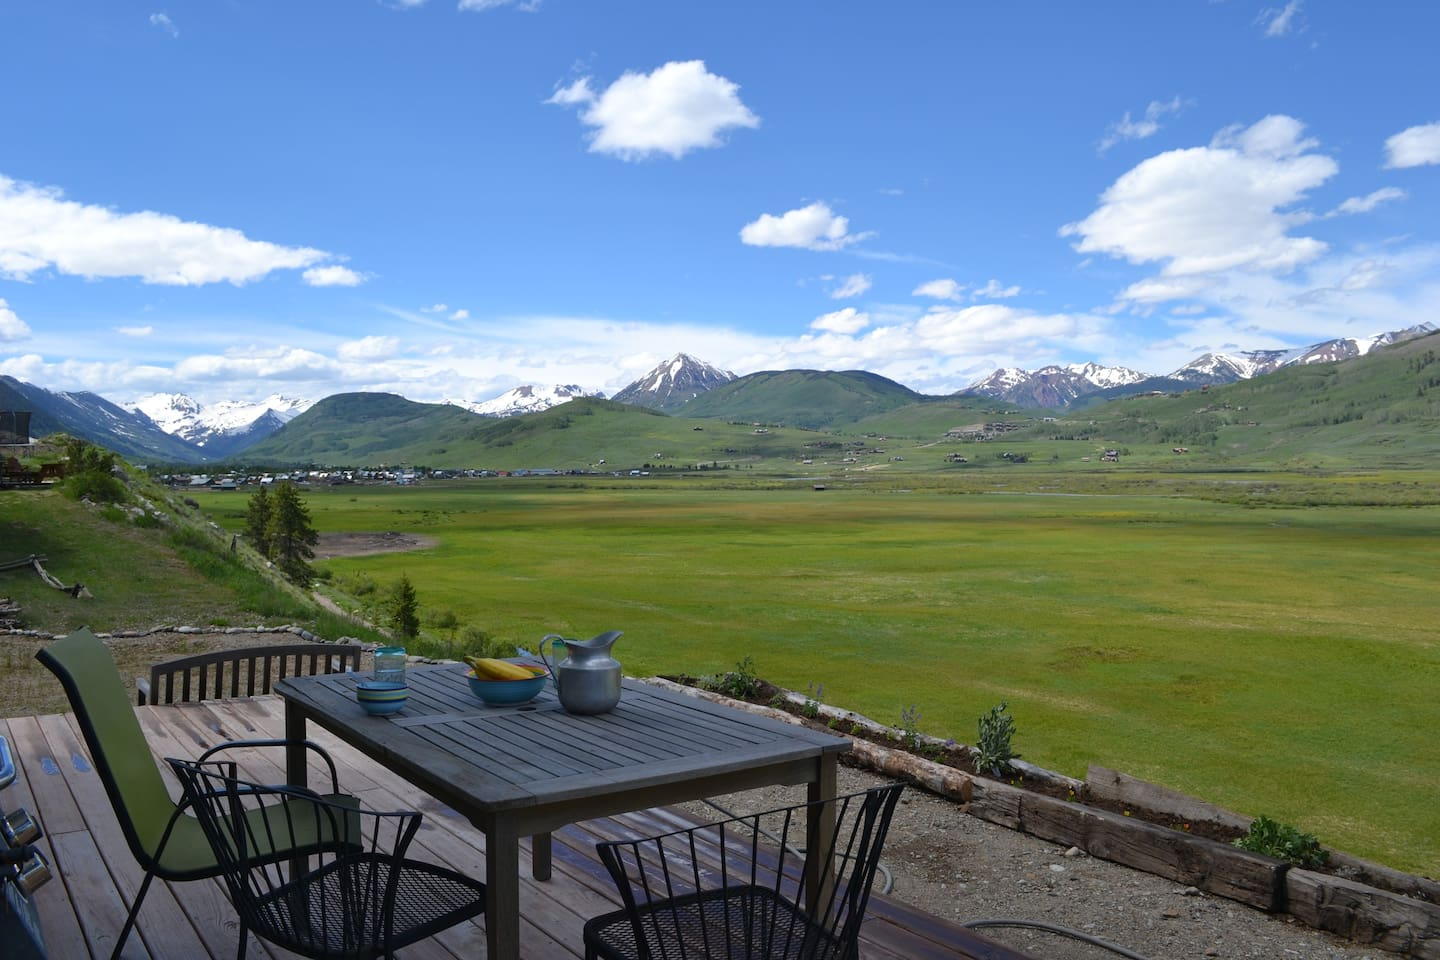 Enjoy a meal, or just hanging out on our deck, with stellar views to town, the mountain, and the paradise divide.